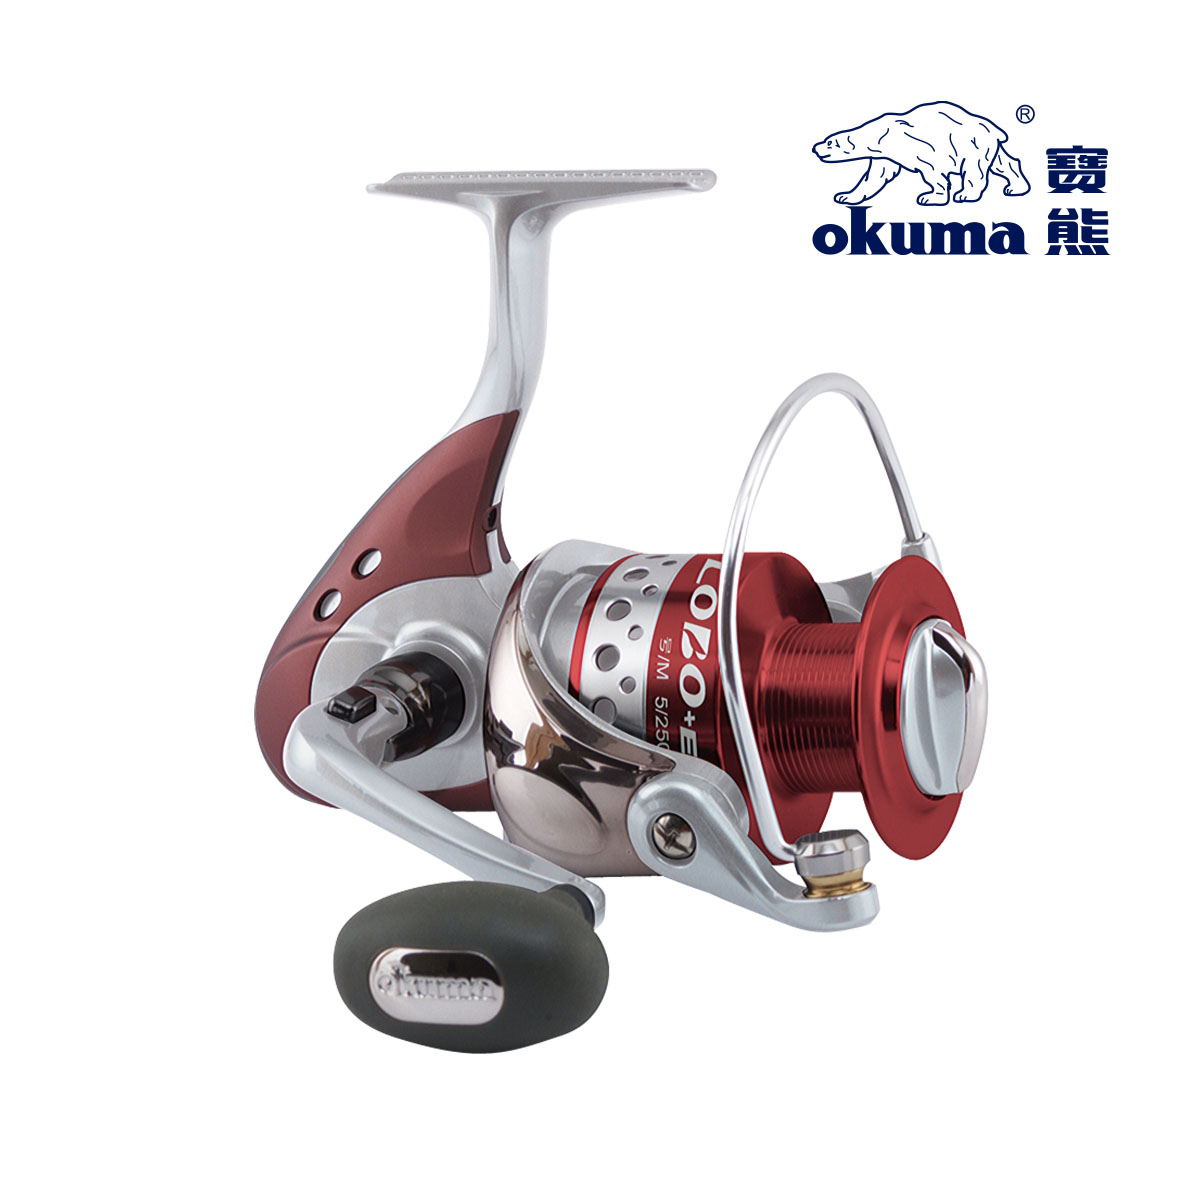 Fishing tackle okuma fishing tackle fishing vessel wheel spinning reel gray wolf loe-4000(China (Mainland))